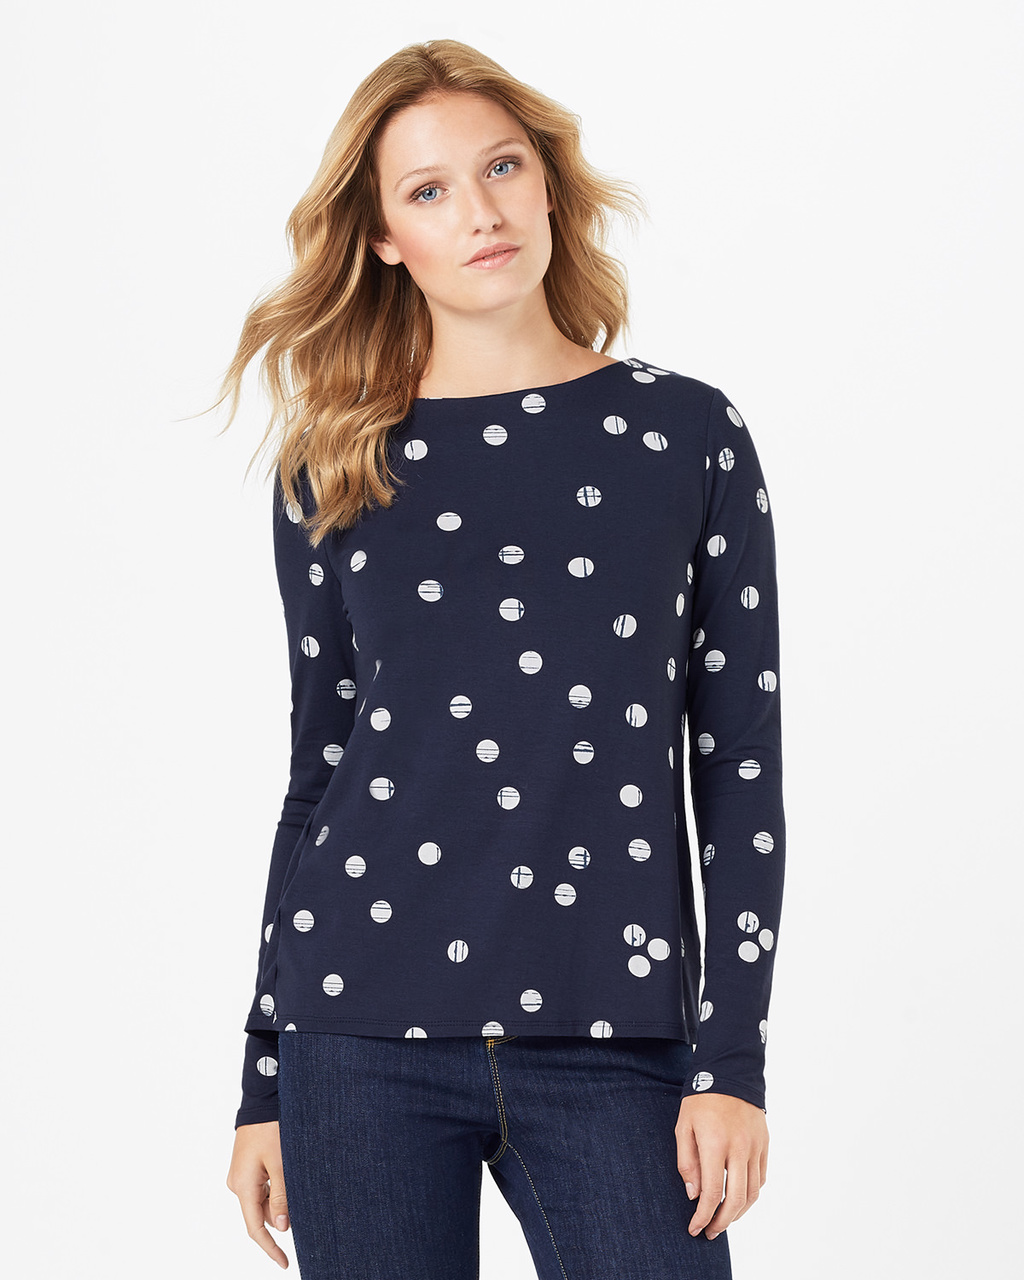 Sue Spot Top - pattern: polka dot; secondary colour: white; predominant colour: navy; occasions: casual; length: standard; style: top; fibres: viscose/rayon - stretch; fit: body skimming; neckline: crew; sleeve length: long sleeve; sleeve style: standard; pattern type: fabric; texture group: jersey - stretchy/drapey; multicoloured: multicoloured; season: a/w 2016; wardrobe: highlight